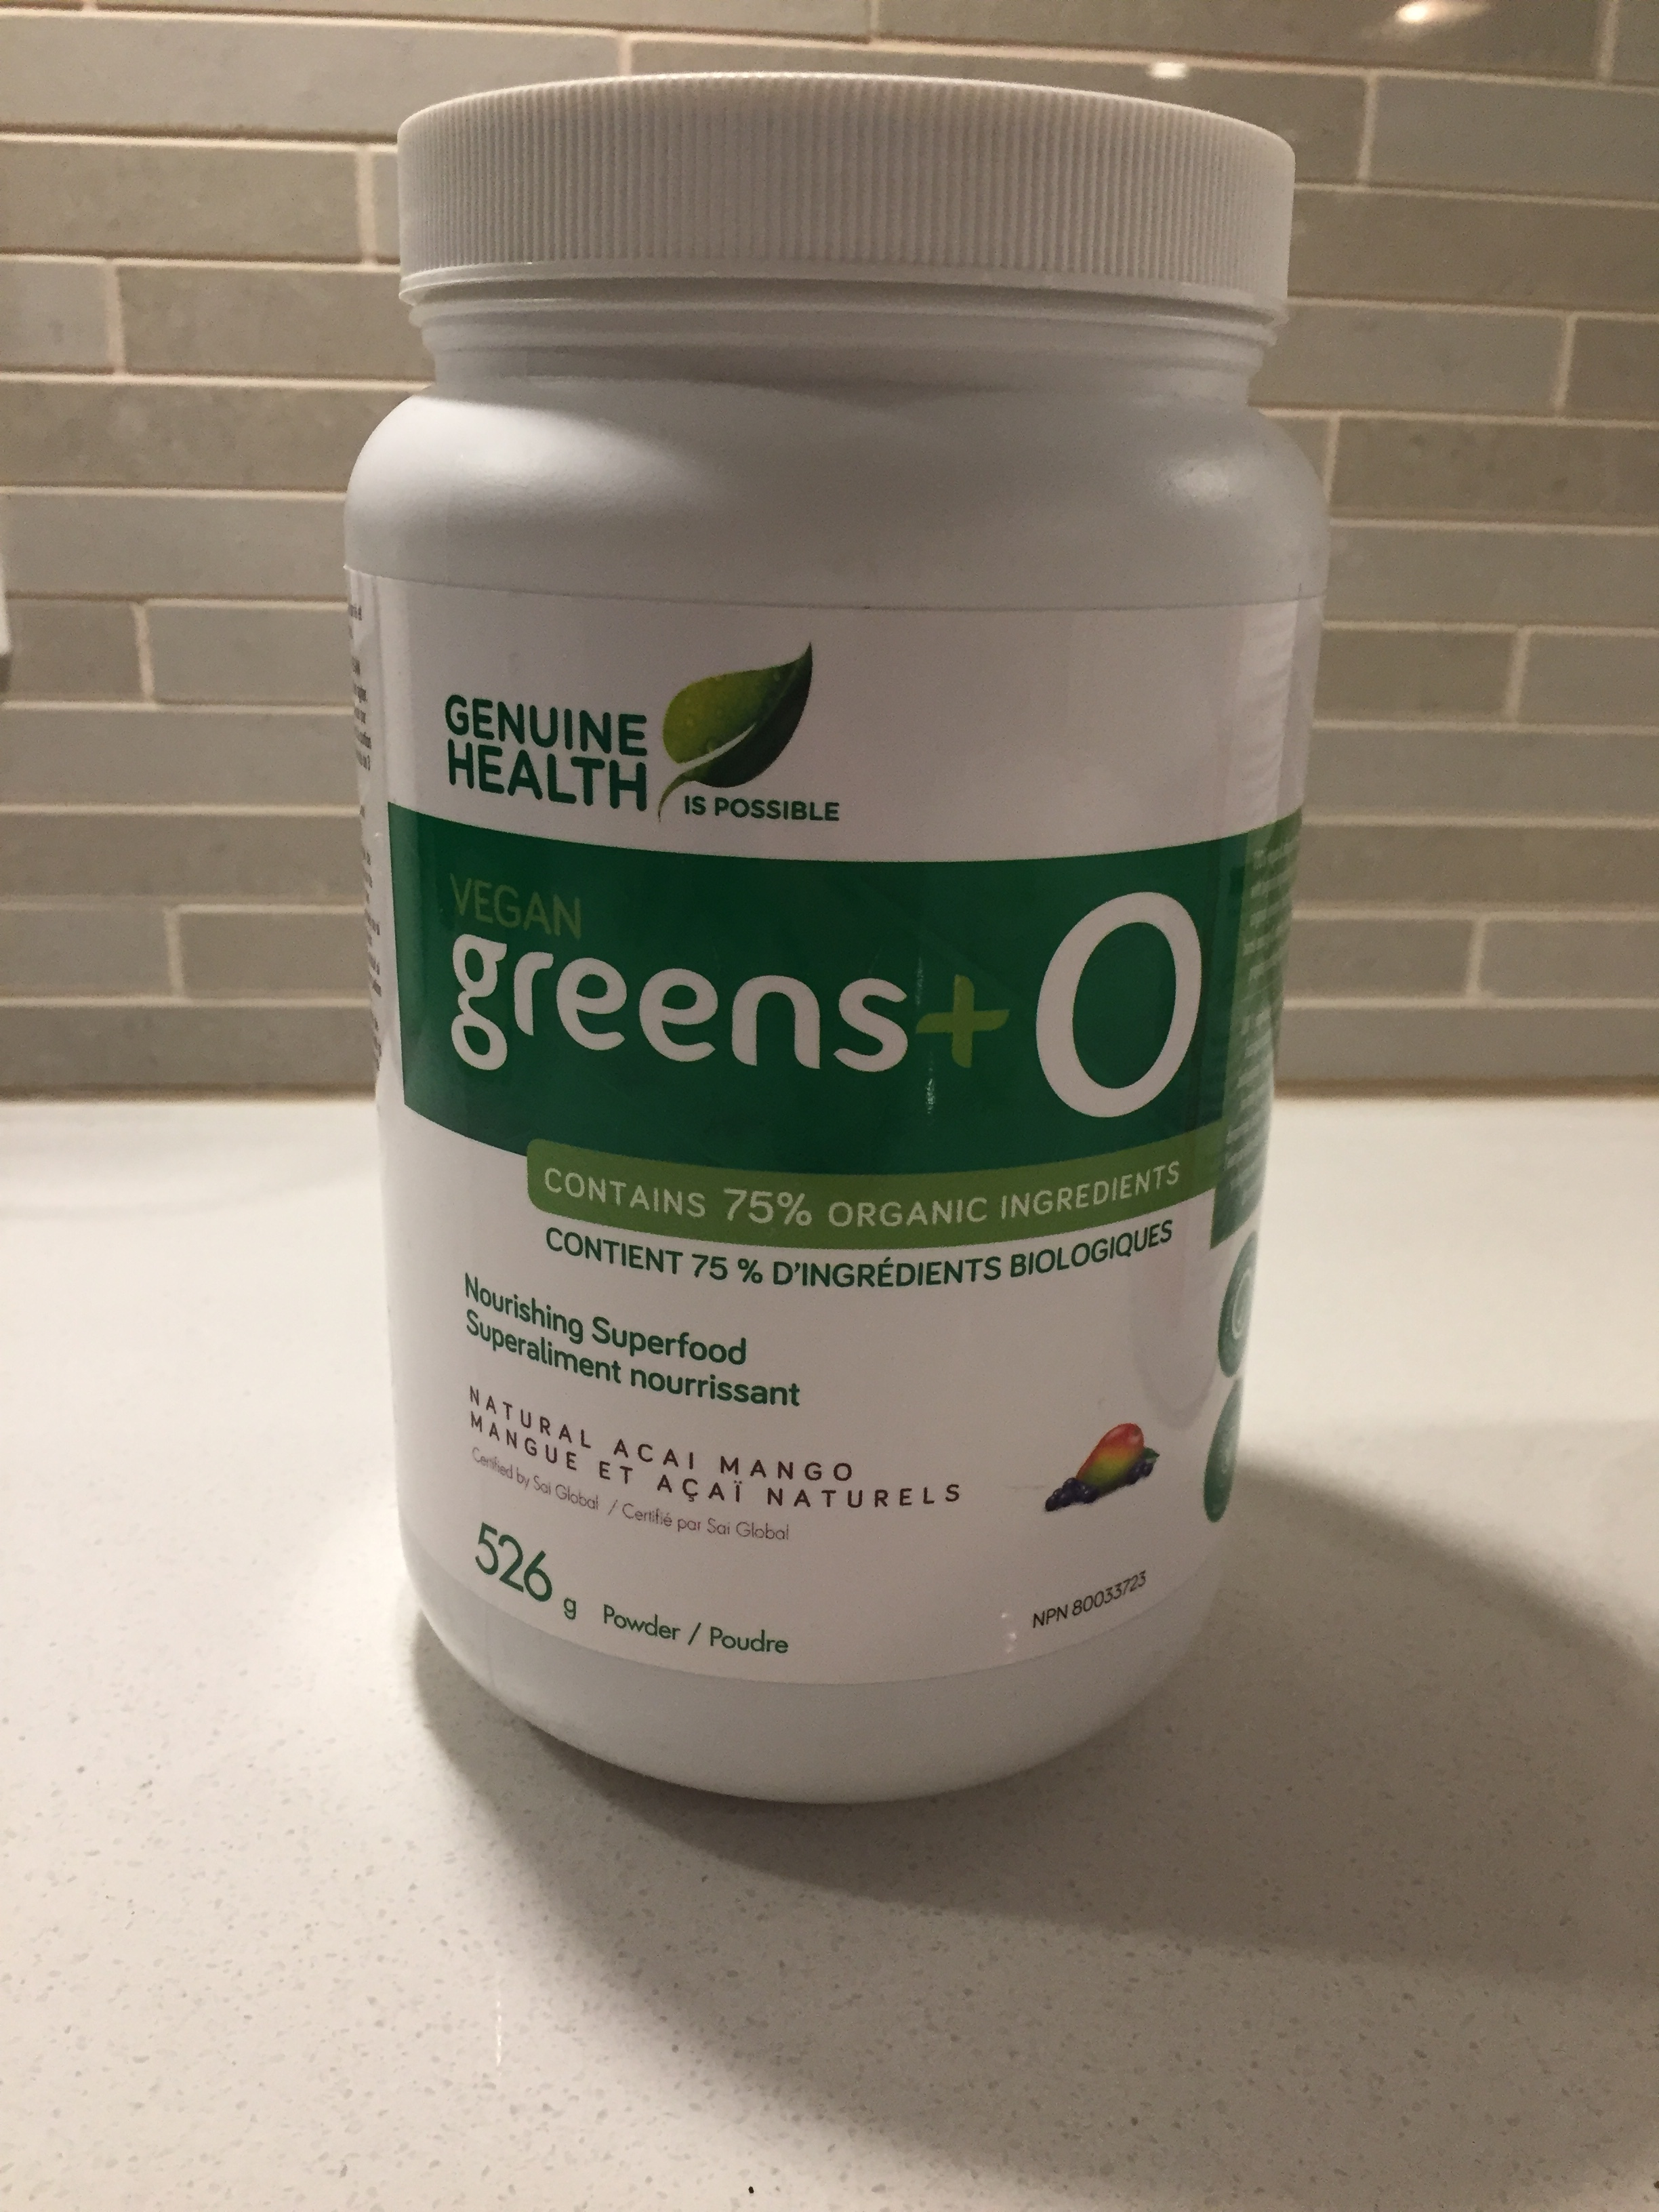 One of our favourite supplement brands. Genuine Health has both a regular and organic version of veggie greens. We use veggie greens to top off our daily intake or on days that we are traveling/fasting.